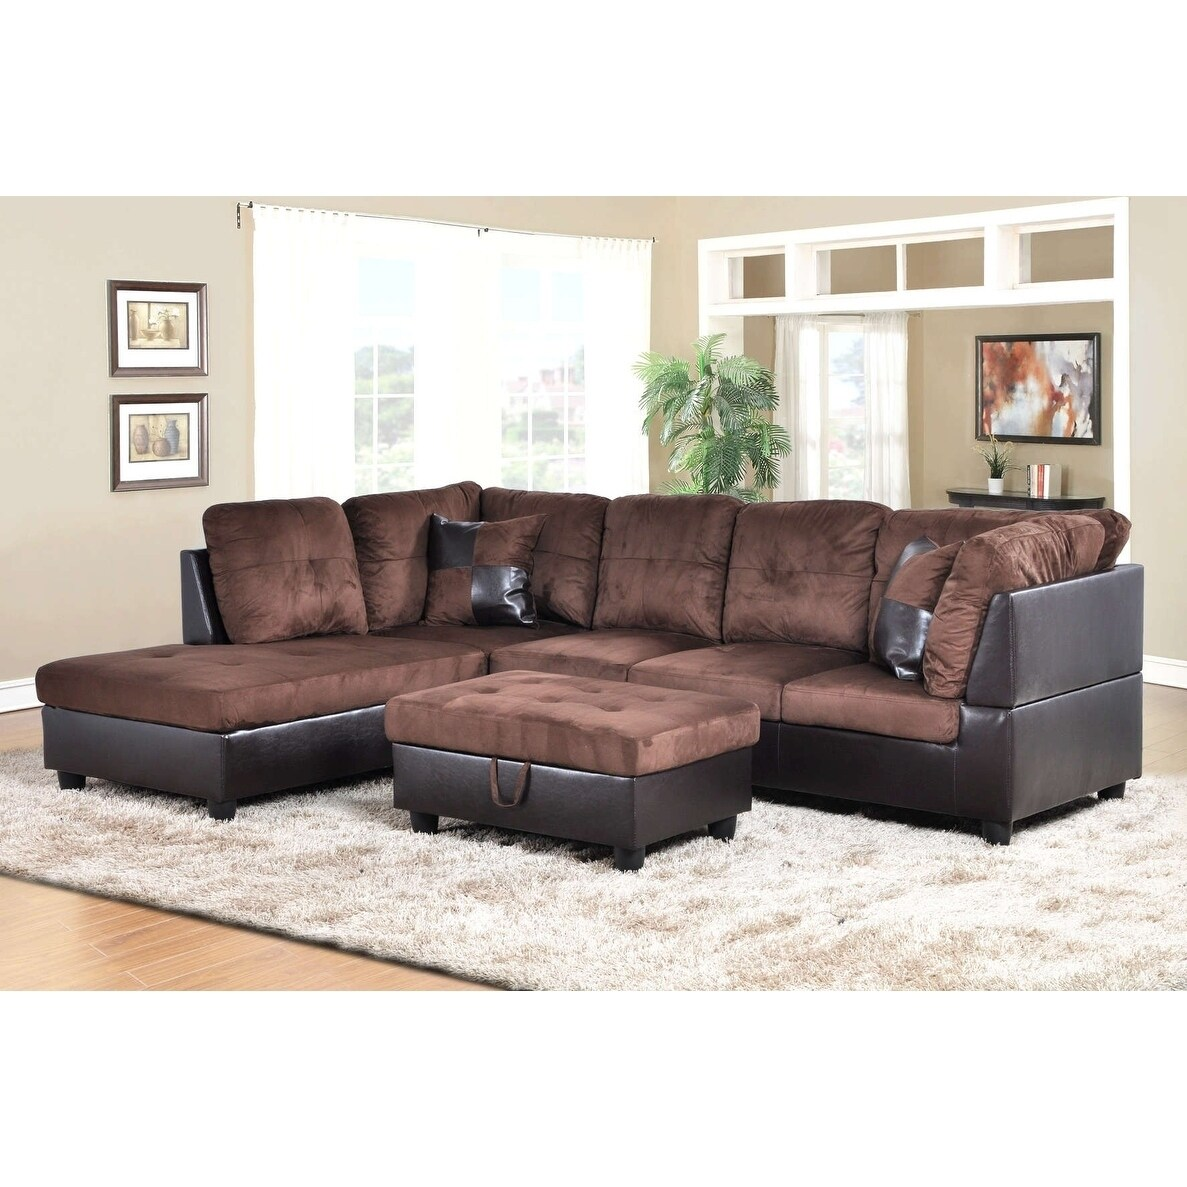 Phenomenal Buy Microfiber Sectional Sofas Online At Overstock Our Bralicious Painted Fabric Chair Ideas Braliciousco